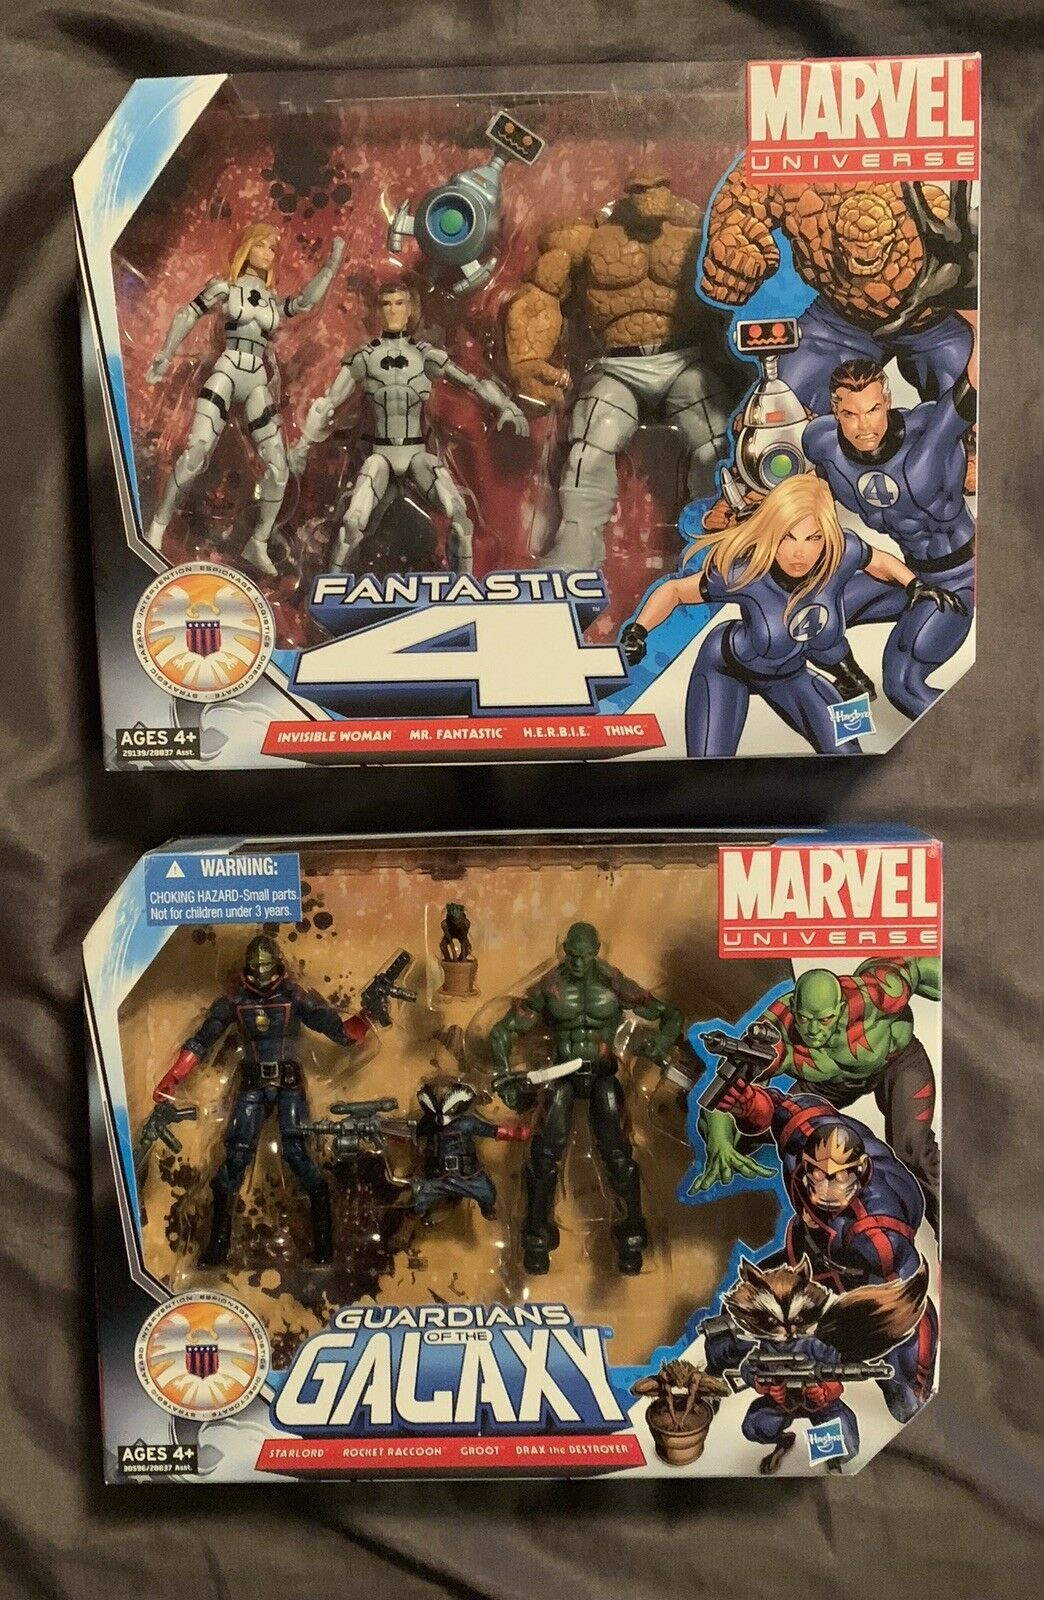 Marvel Universe Fantastic 4 (Future Foundation Variant) Guardians of The Galaxy